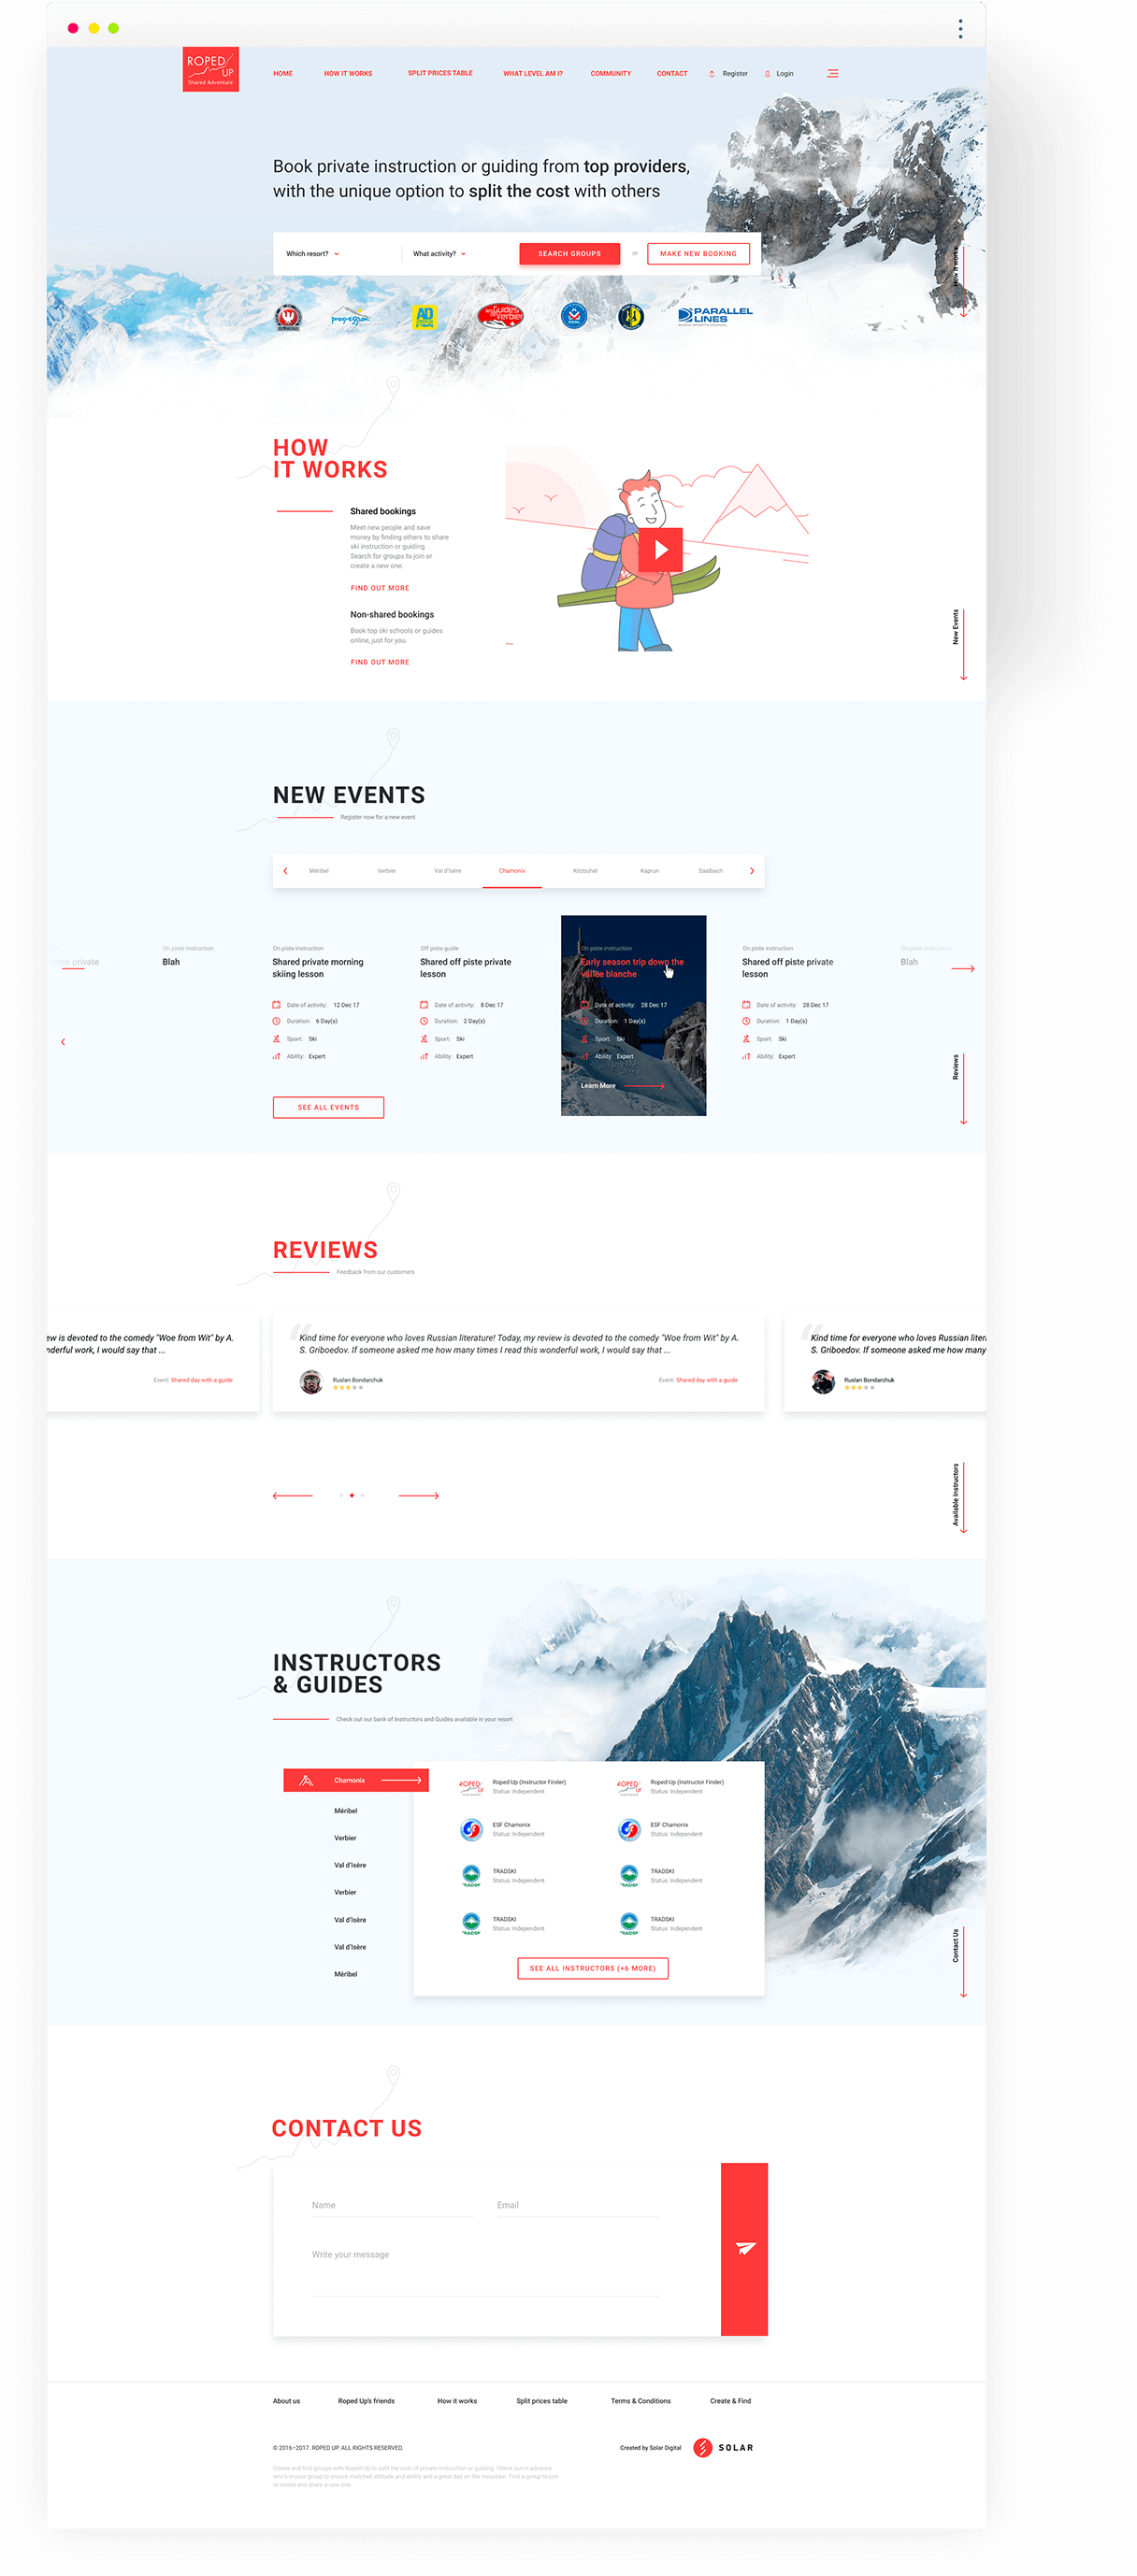 Second version of long last development of a marketplace for skiers.